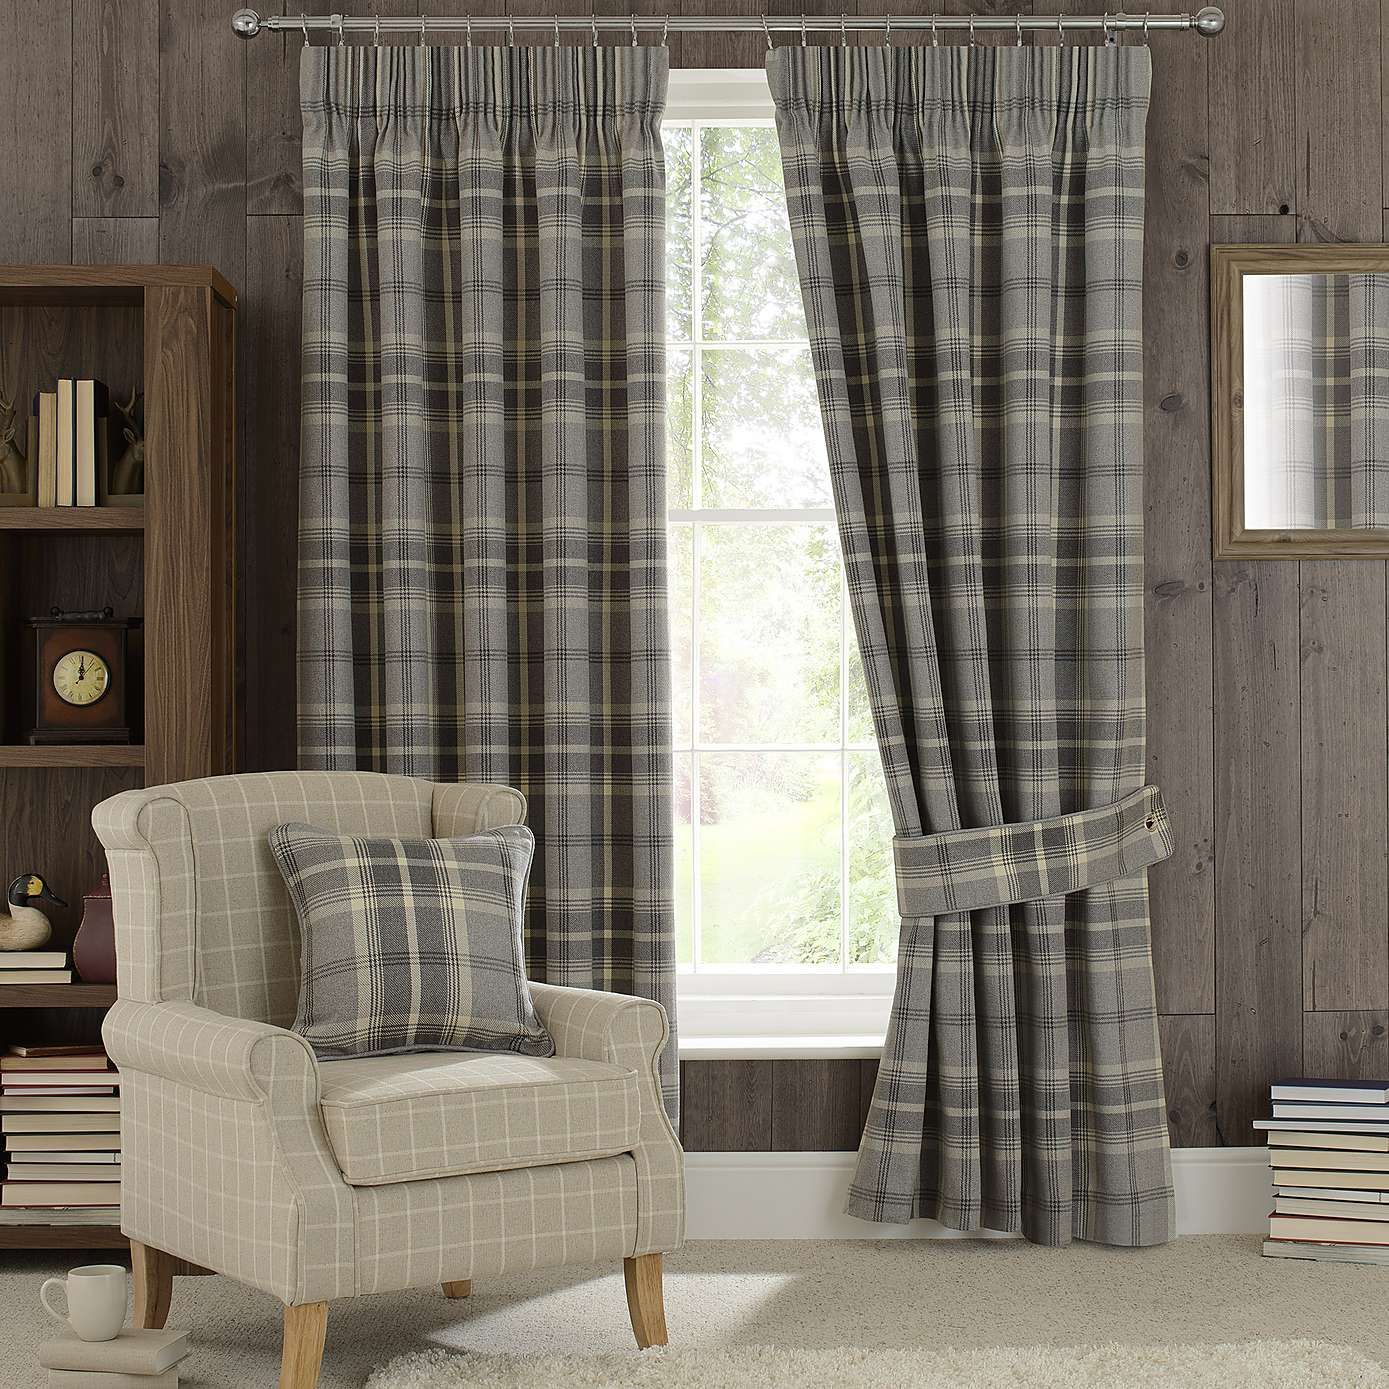 Dunelm Mill Kitchen Curtains Dove Grey Highland Check Pencil Pleat Curtains Dunelm Home